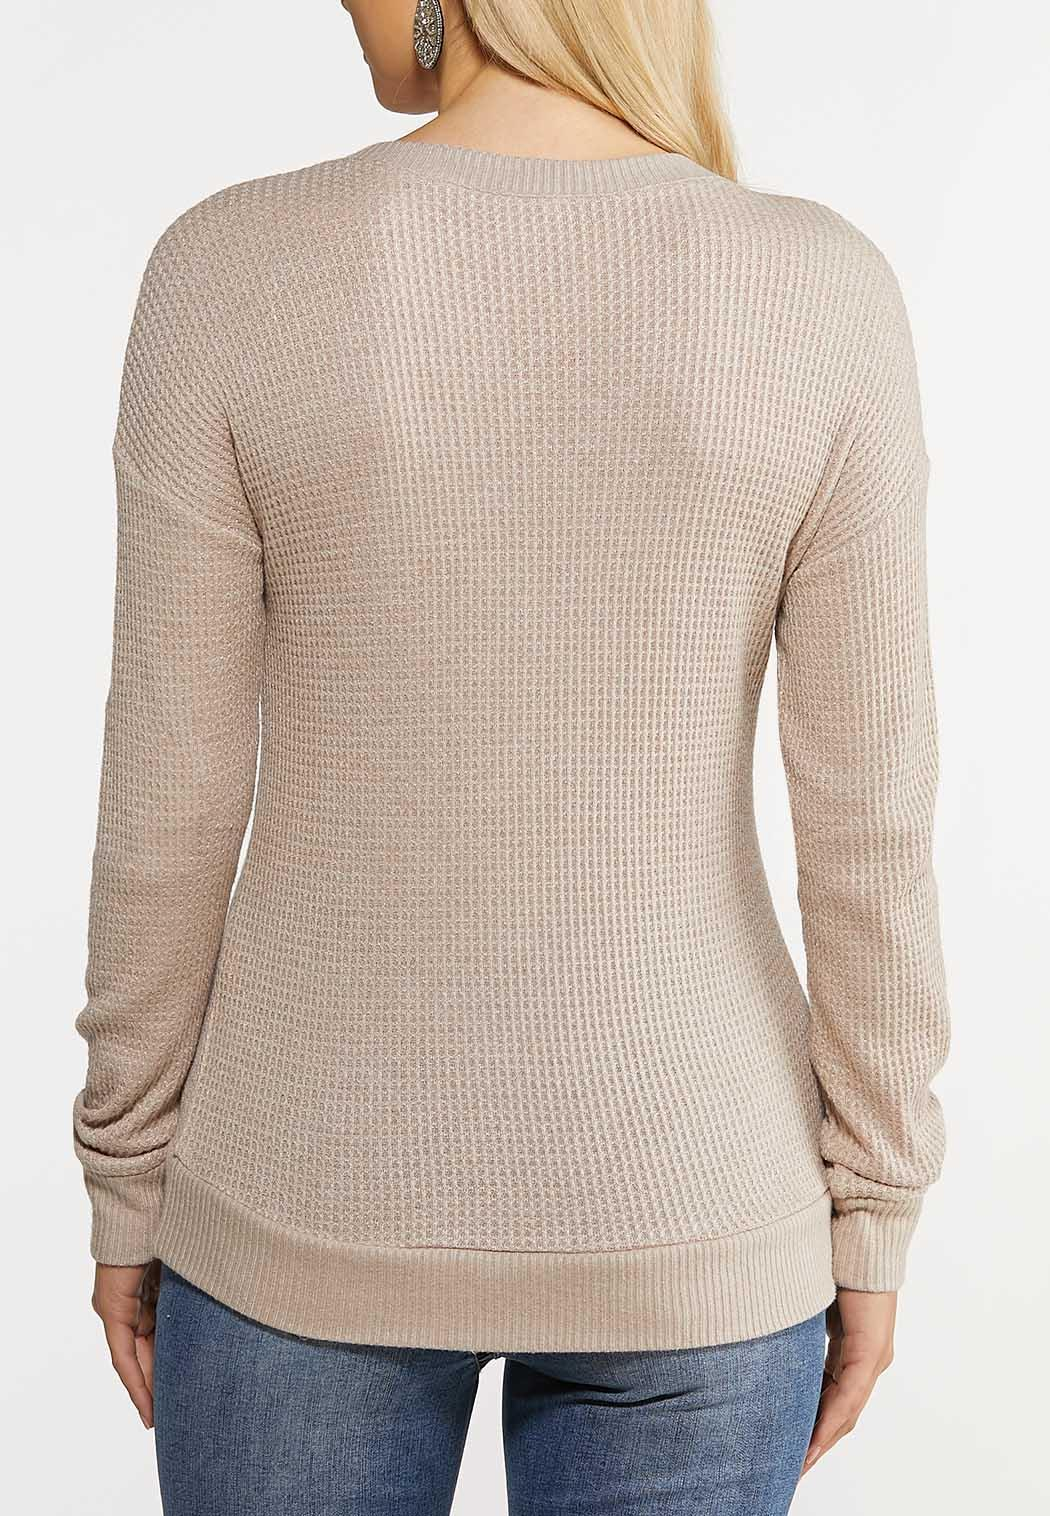 Lace Up Thermal Top (Item #44070716)